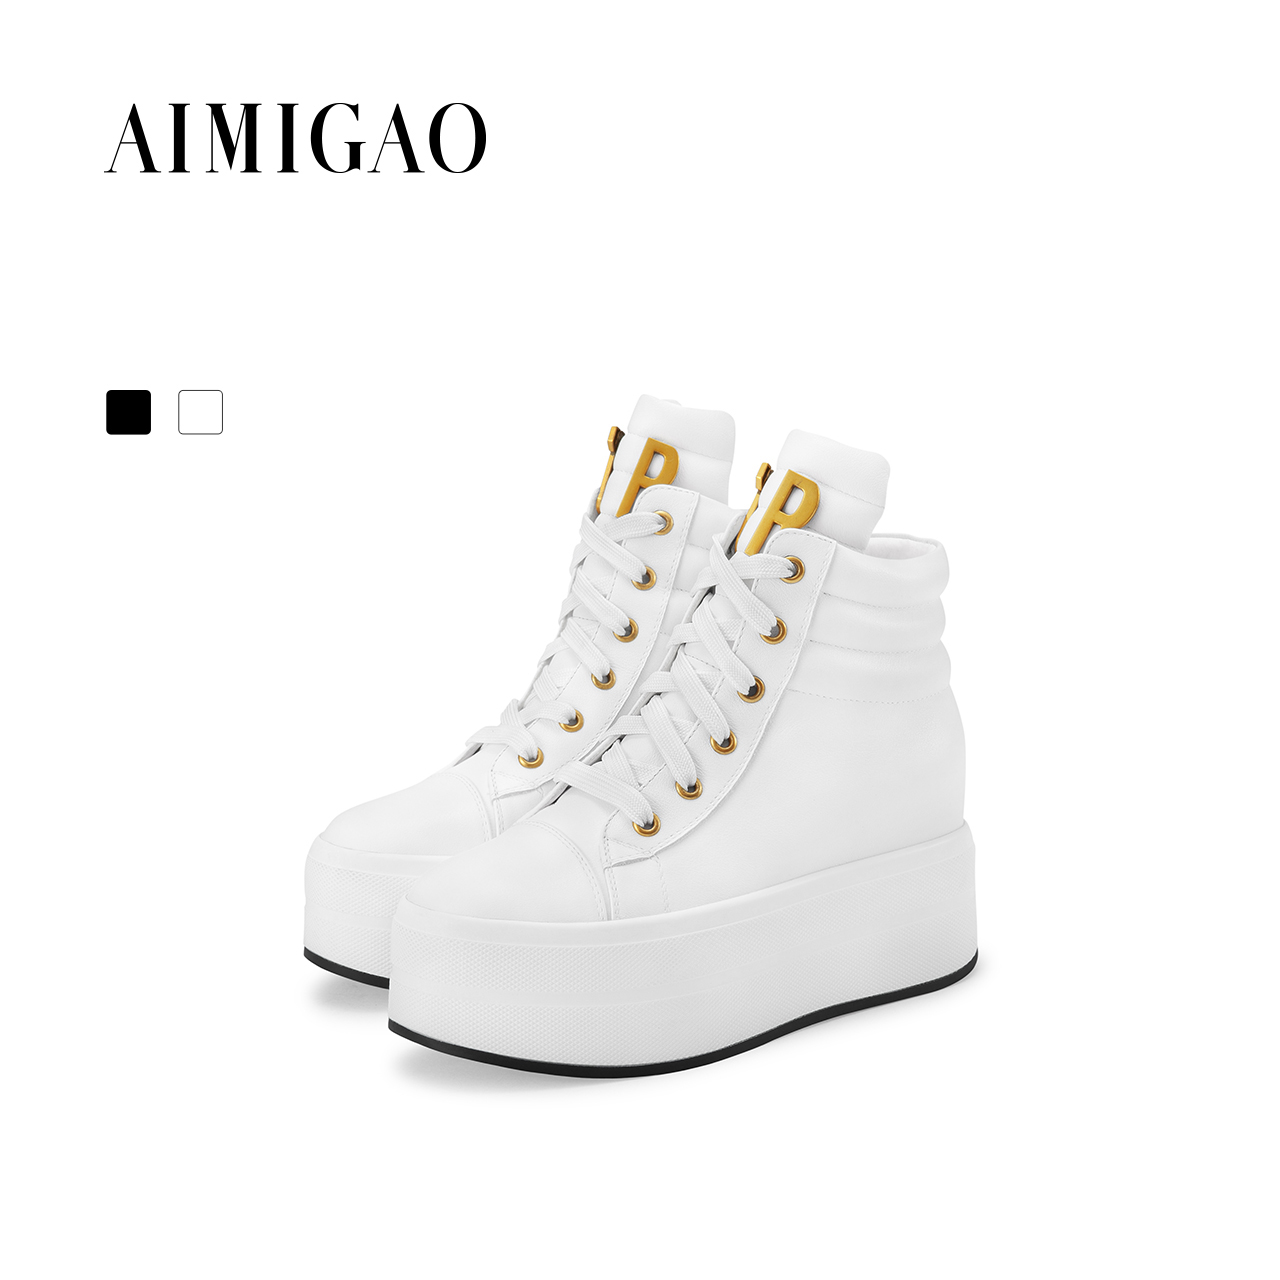 AIMIGAO Genuine Leather women casual white shoes comfortable thick bottom women shoes fashion Lace-up Flat shoes 2017 autumn women s shoes 2017 summer new fashion footwear women s air network flat shoes breathable comfortable casual shoes jdt103